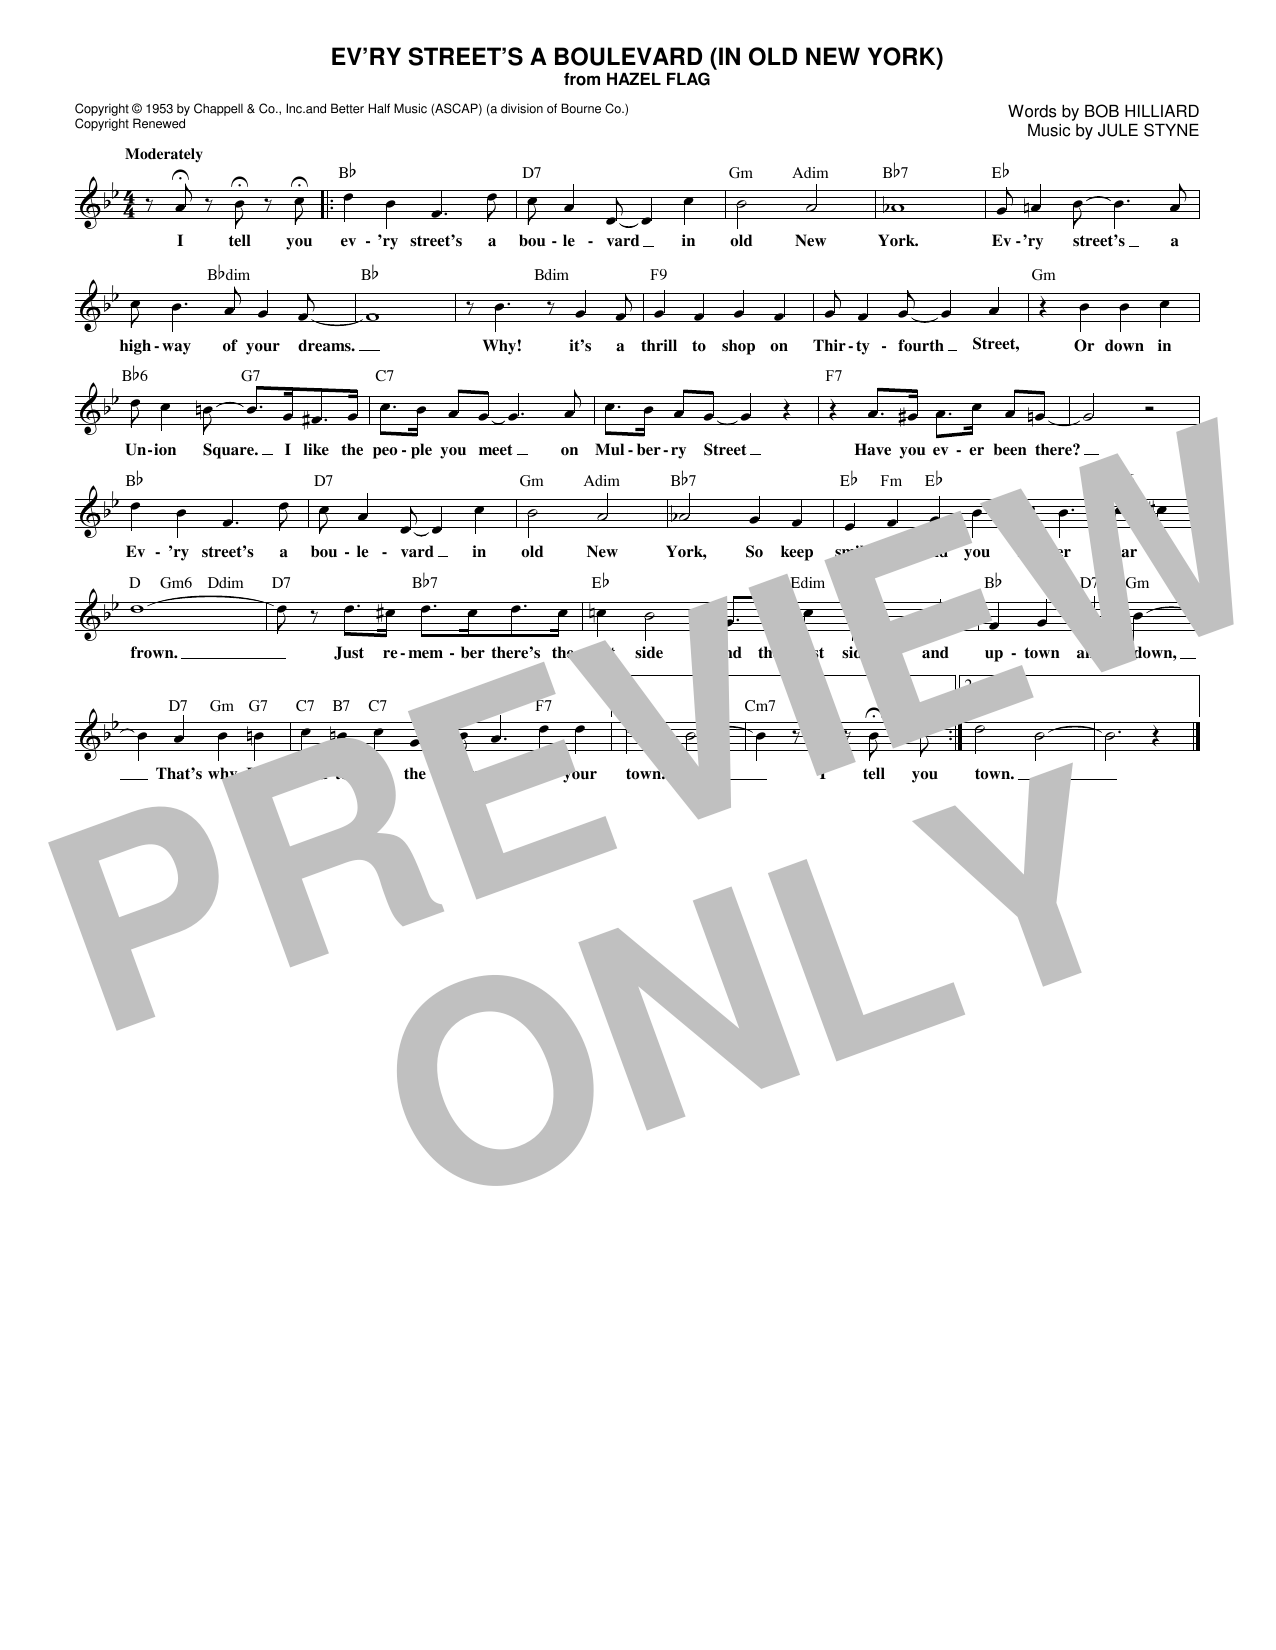 Bob Hilliard Ev'ry Street's A Boulevard (In Old New York) sheet music notes and chords. Download Printable PDF.